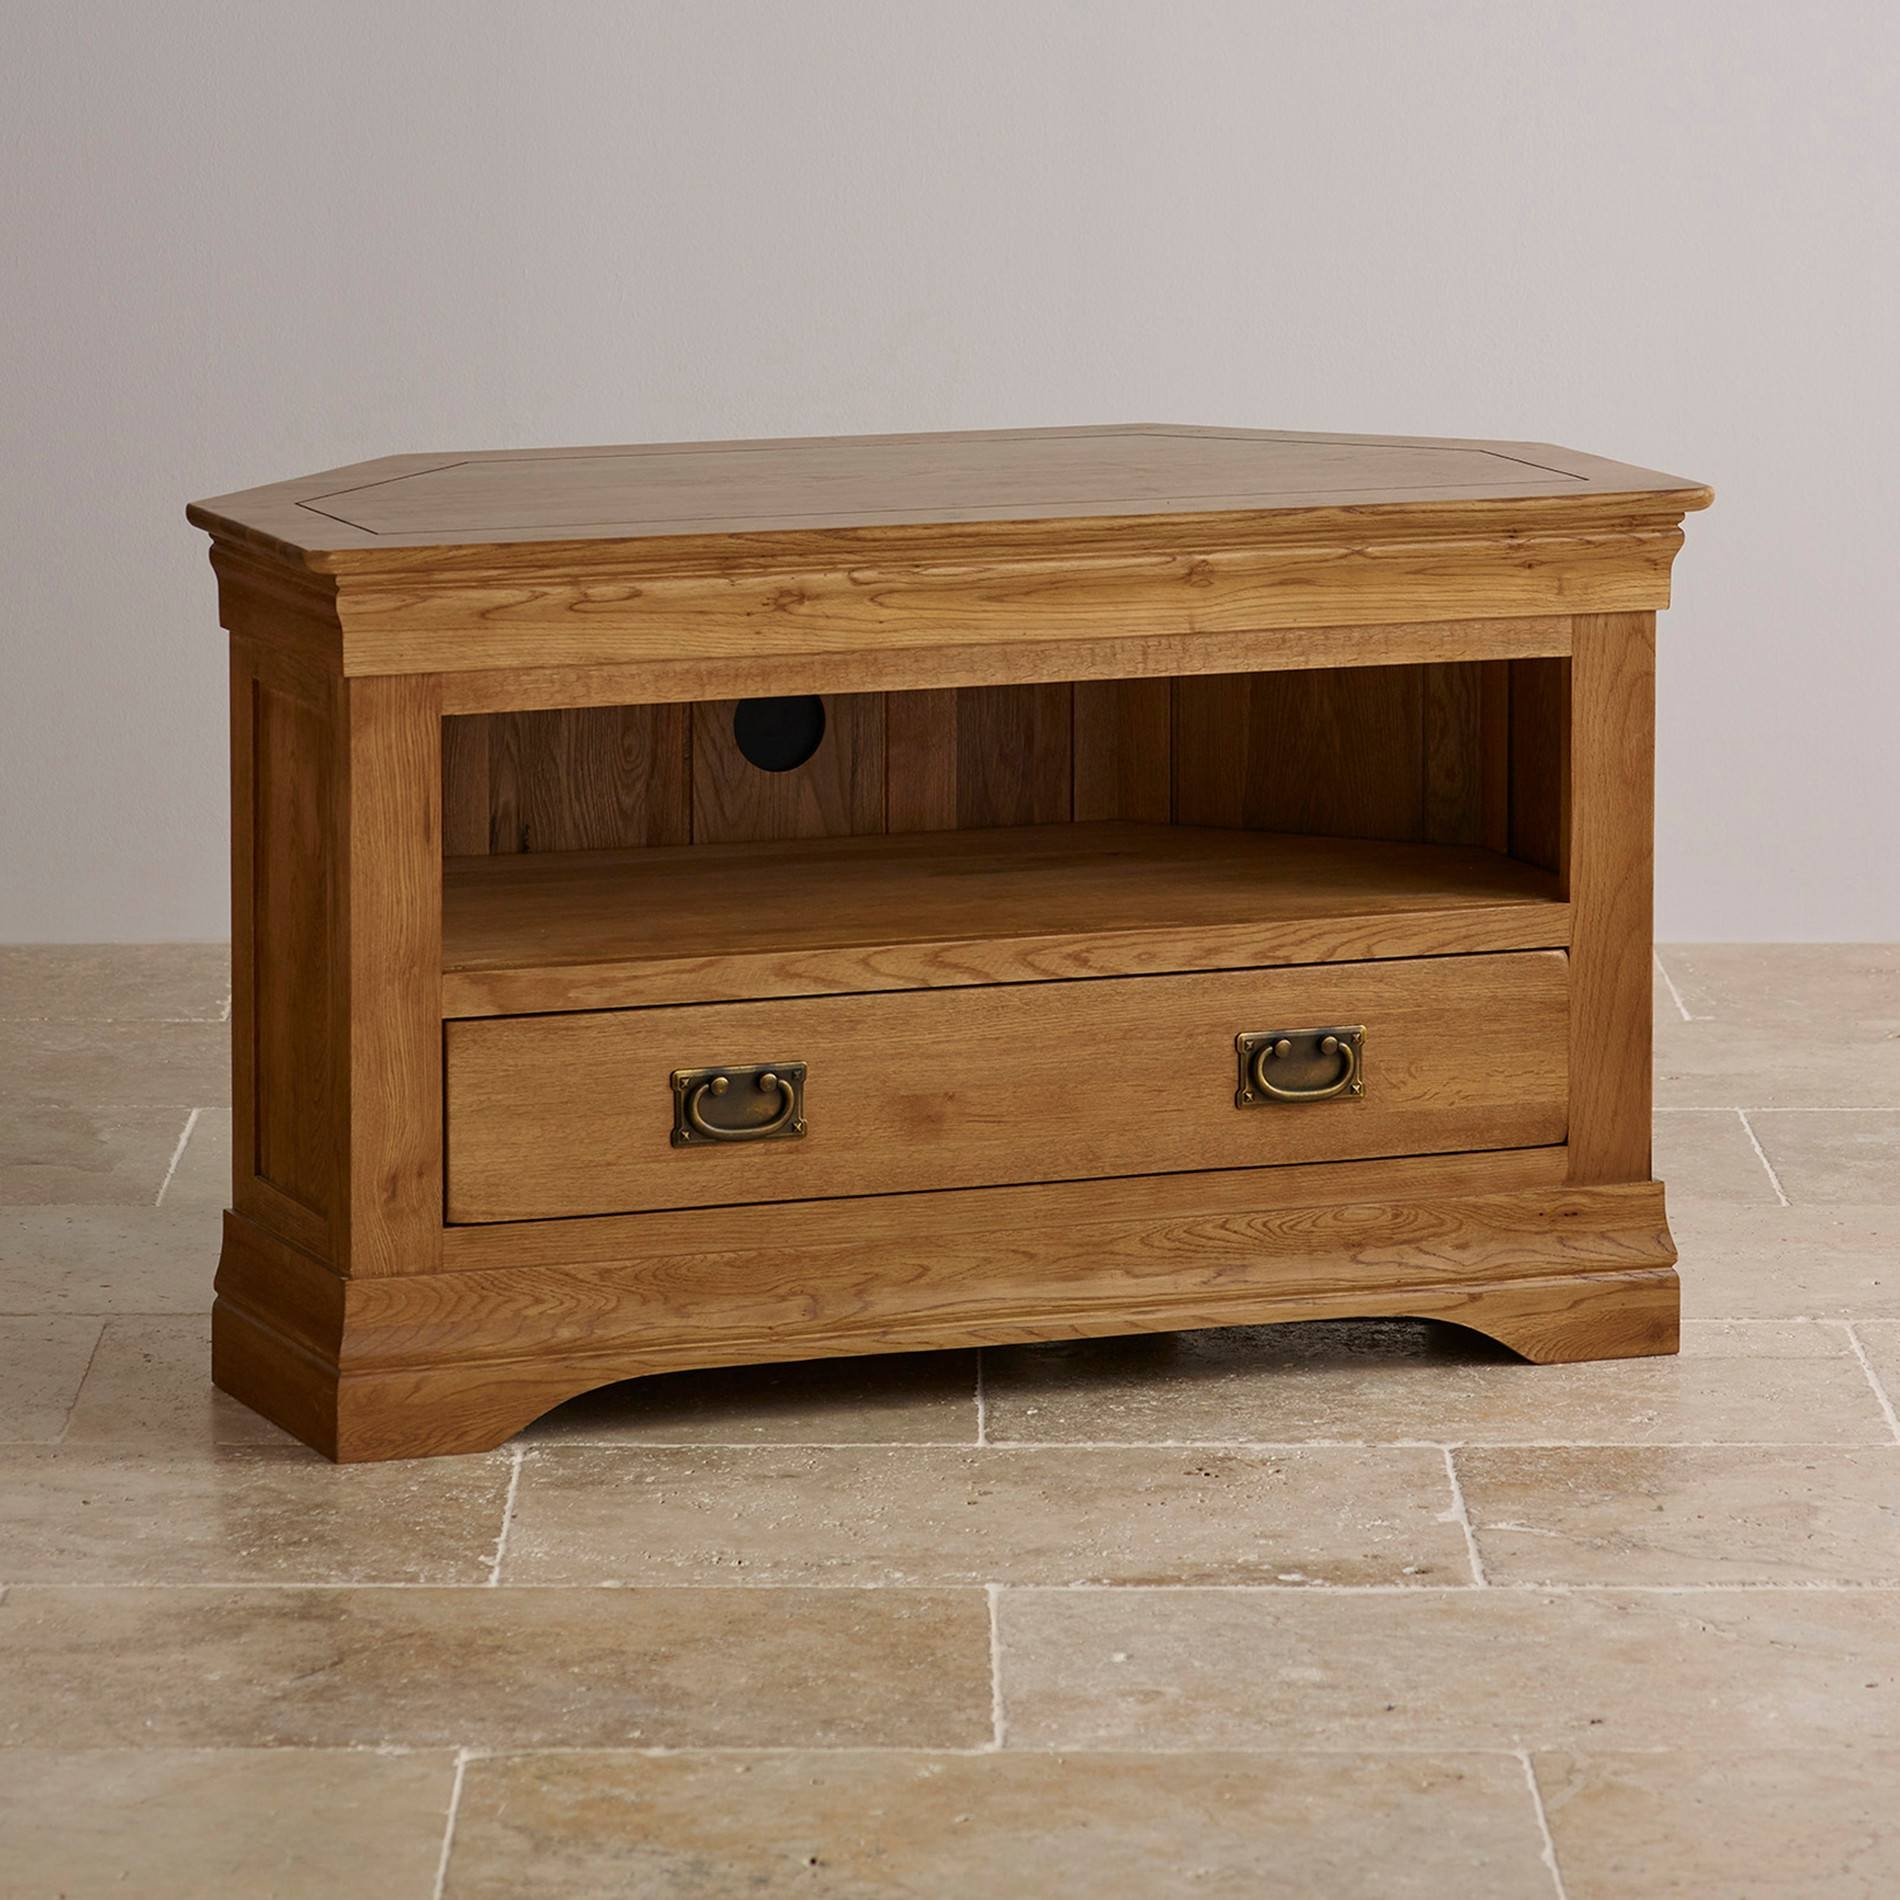 French Farmhouse Corner Tv Unit | Solid Oak | Oak Furniture Land With Regard To Wooden Corner Tv Units (View 3 of 15)